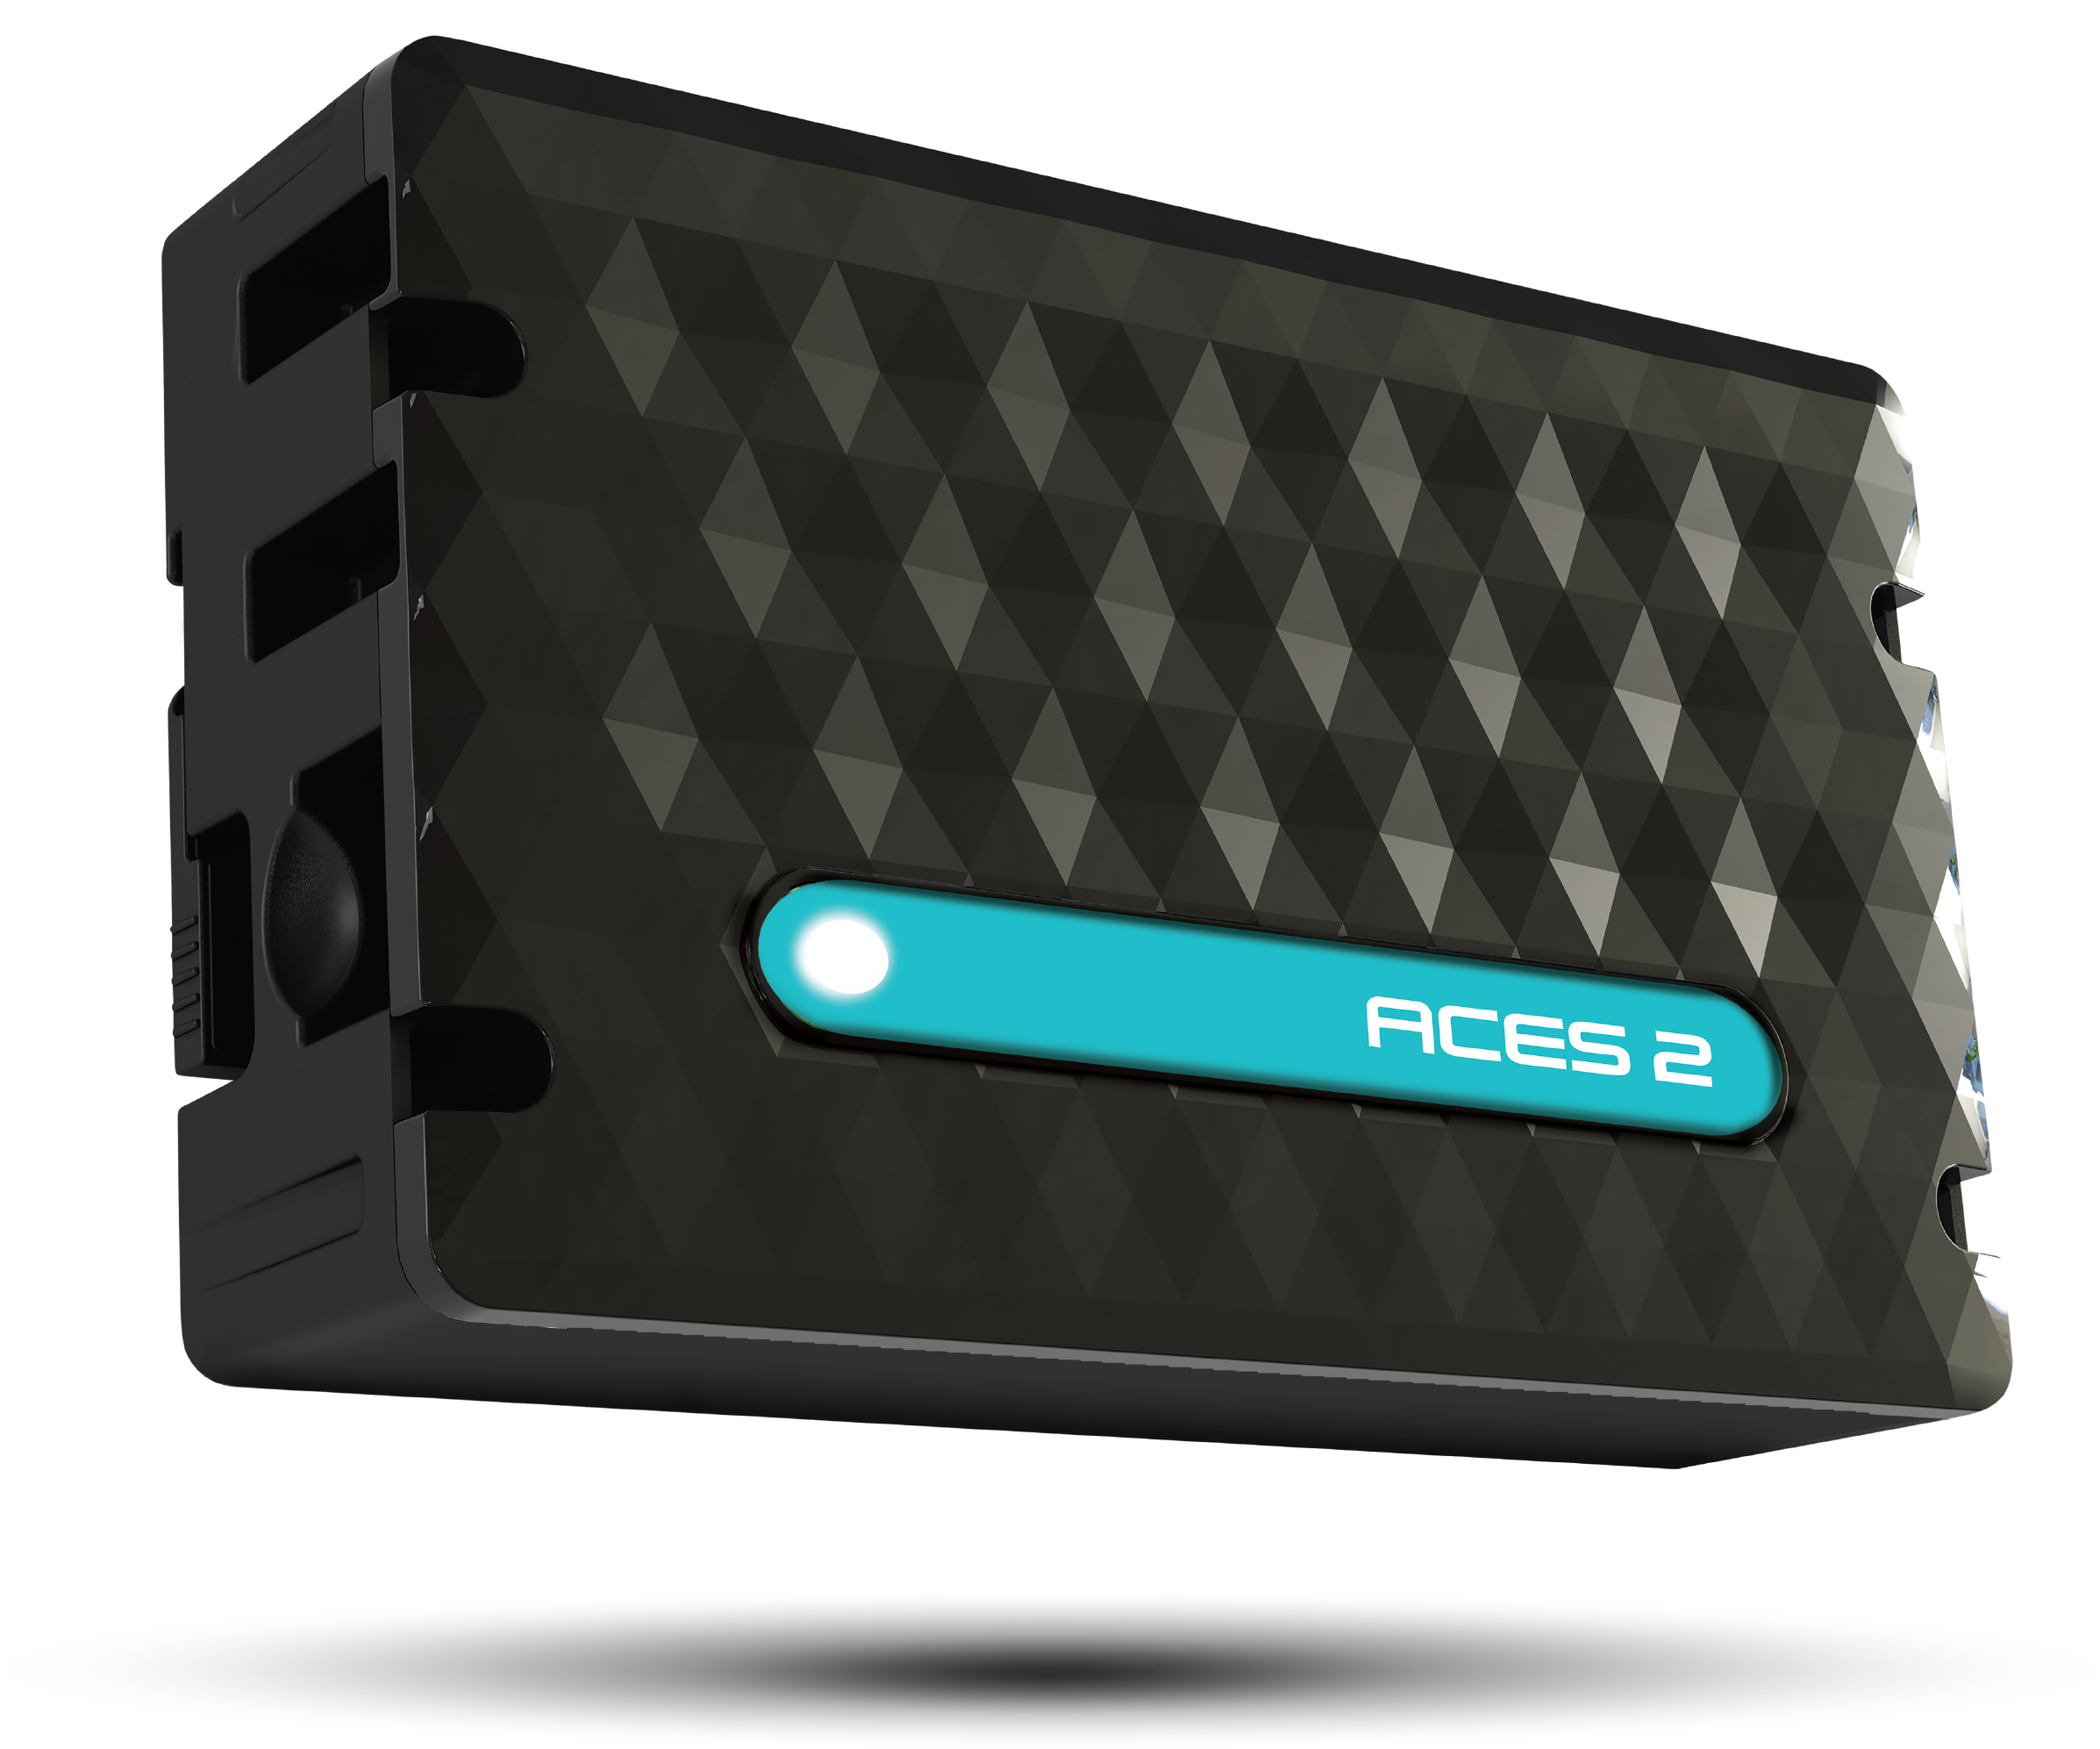 ACES 2 - air conditioning energy saving